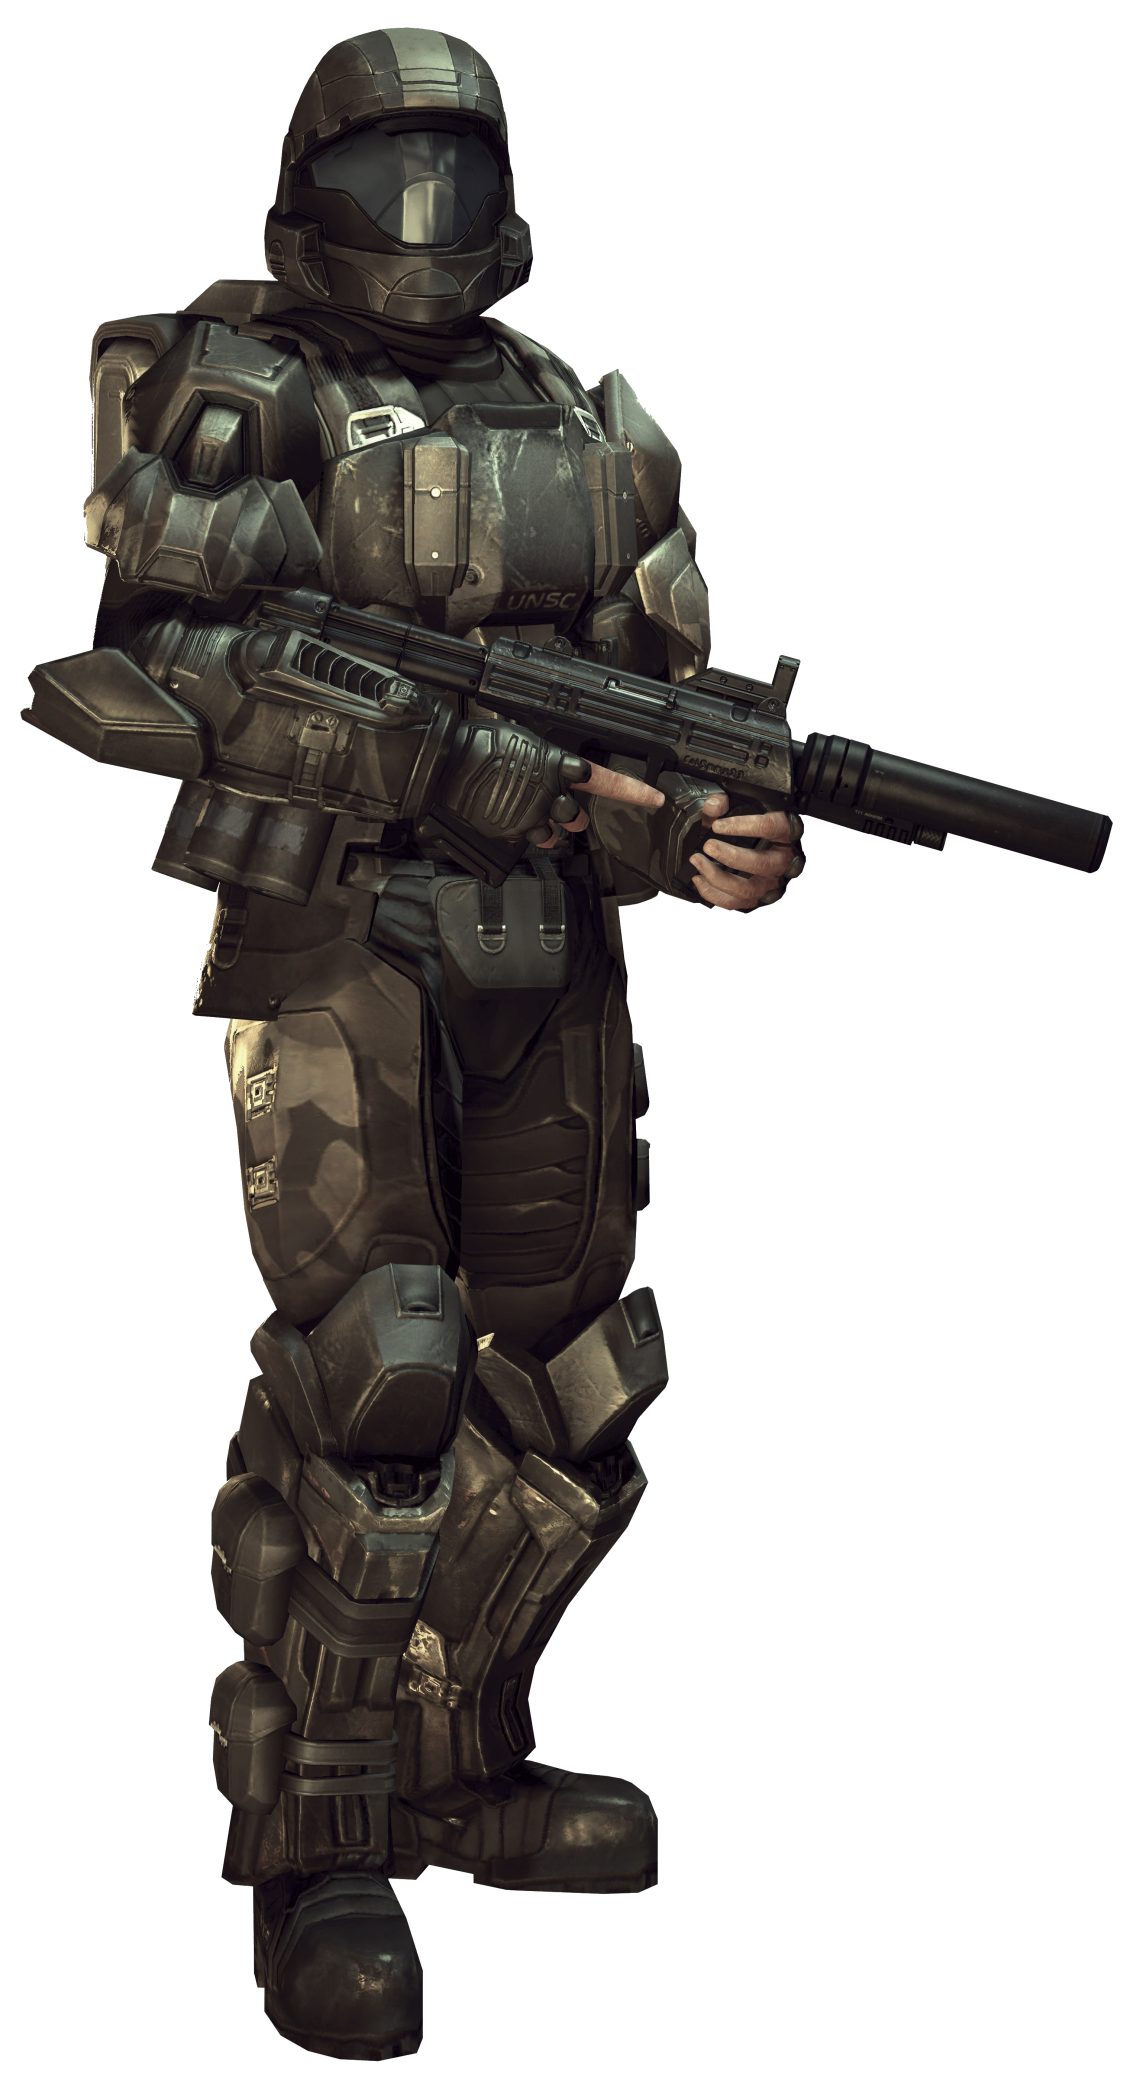 Image halo3 odst halo fanon fandom powered by wikia - Halo odst images ...